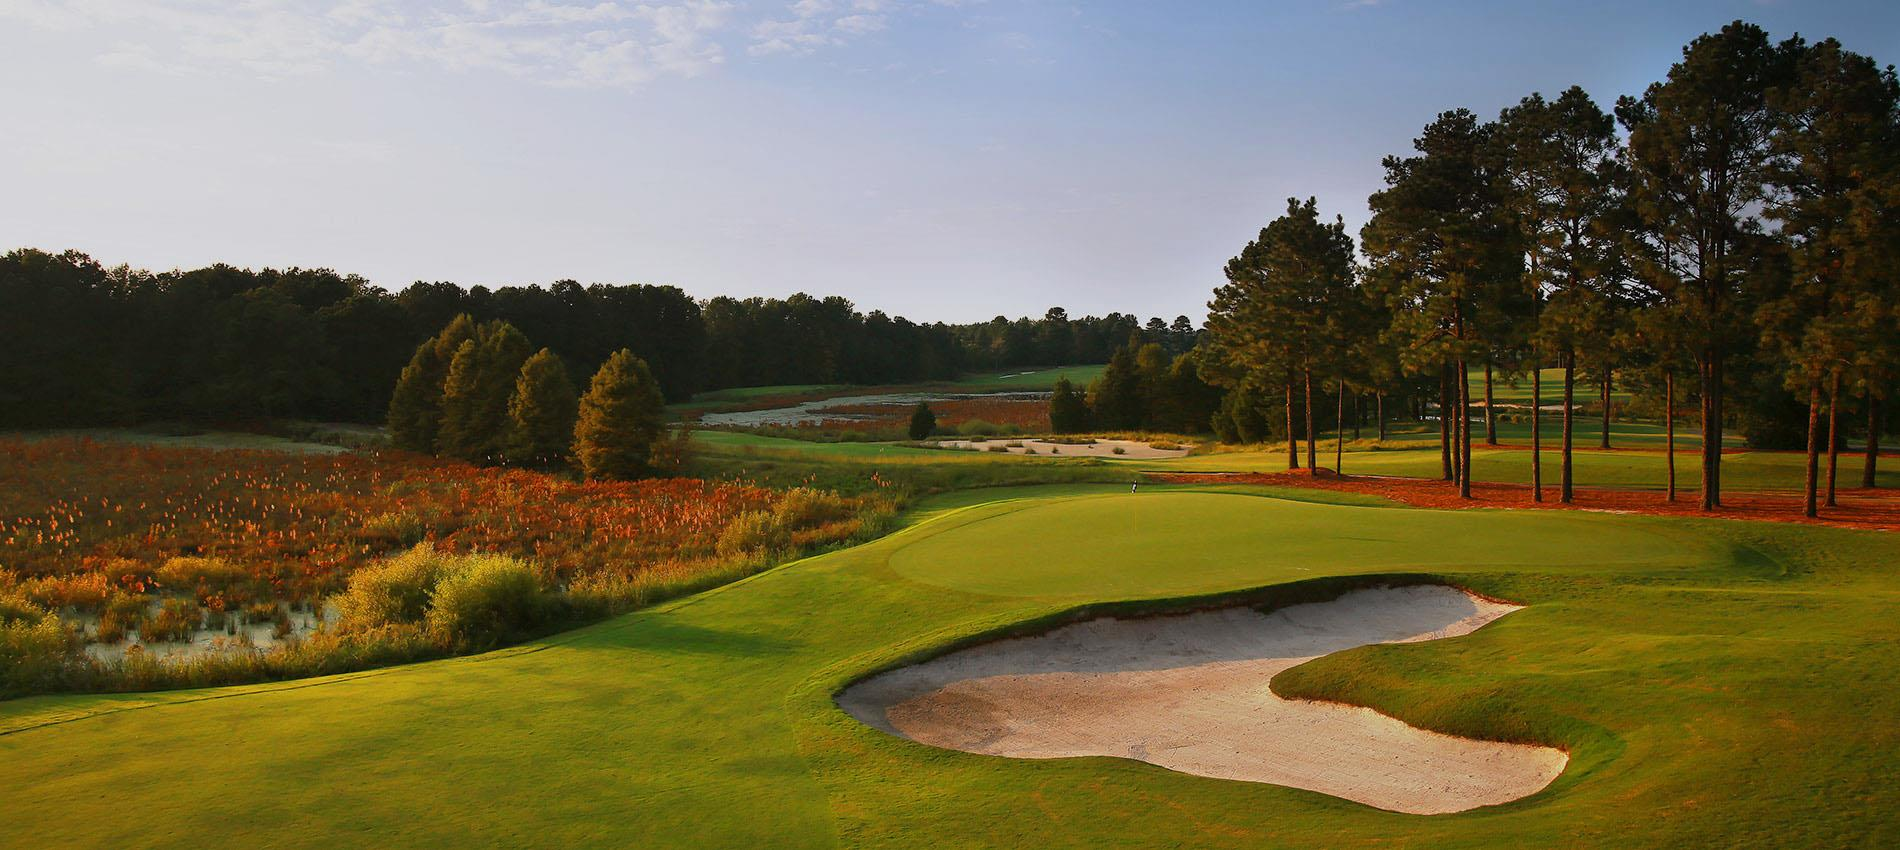 The Carolina at Pinehurst 5* - 7 Nights Bed & Breakfast, 5 Rounds (Including Pinehurst No.2)